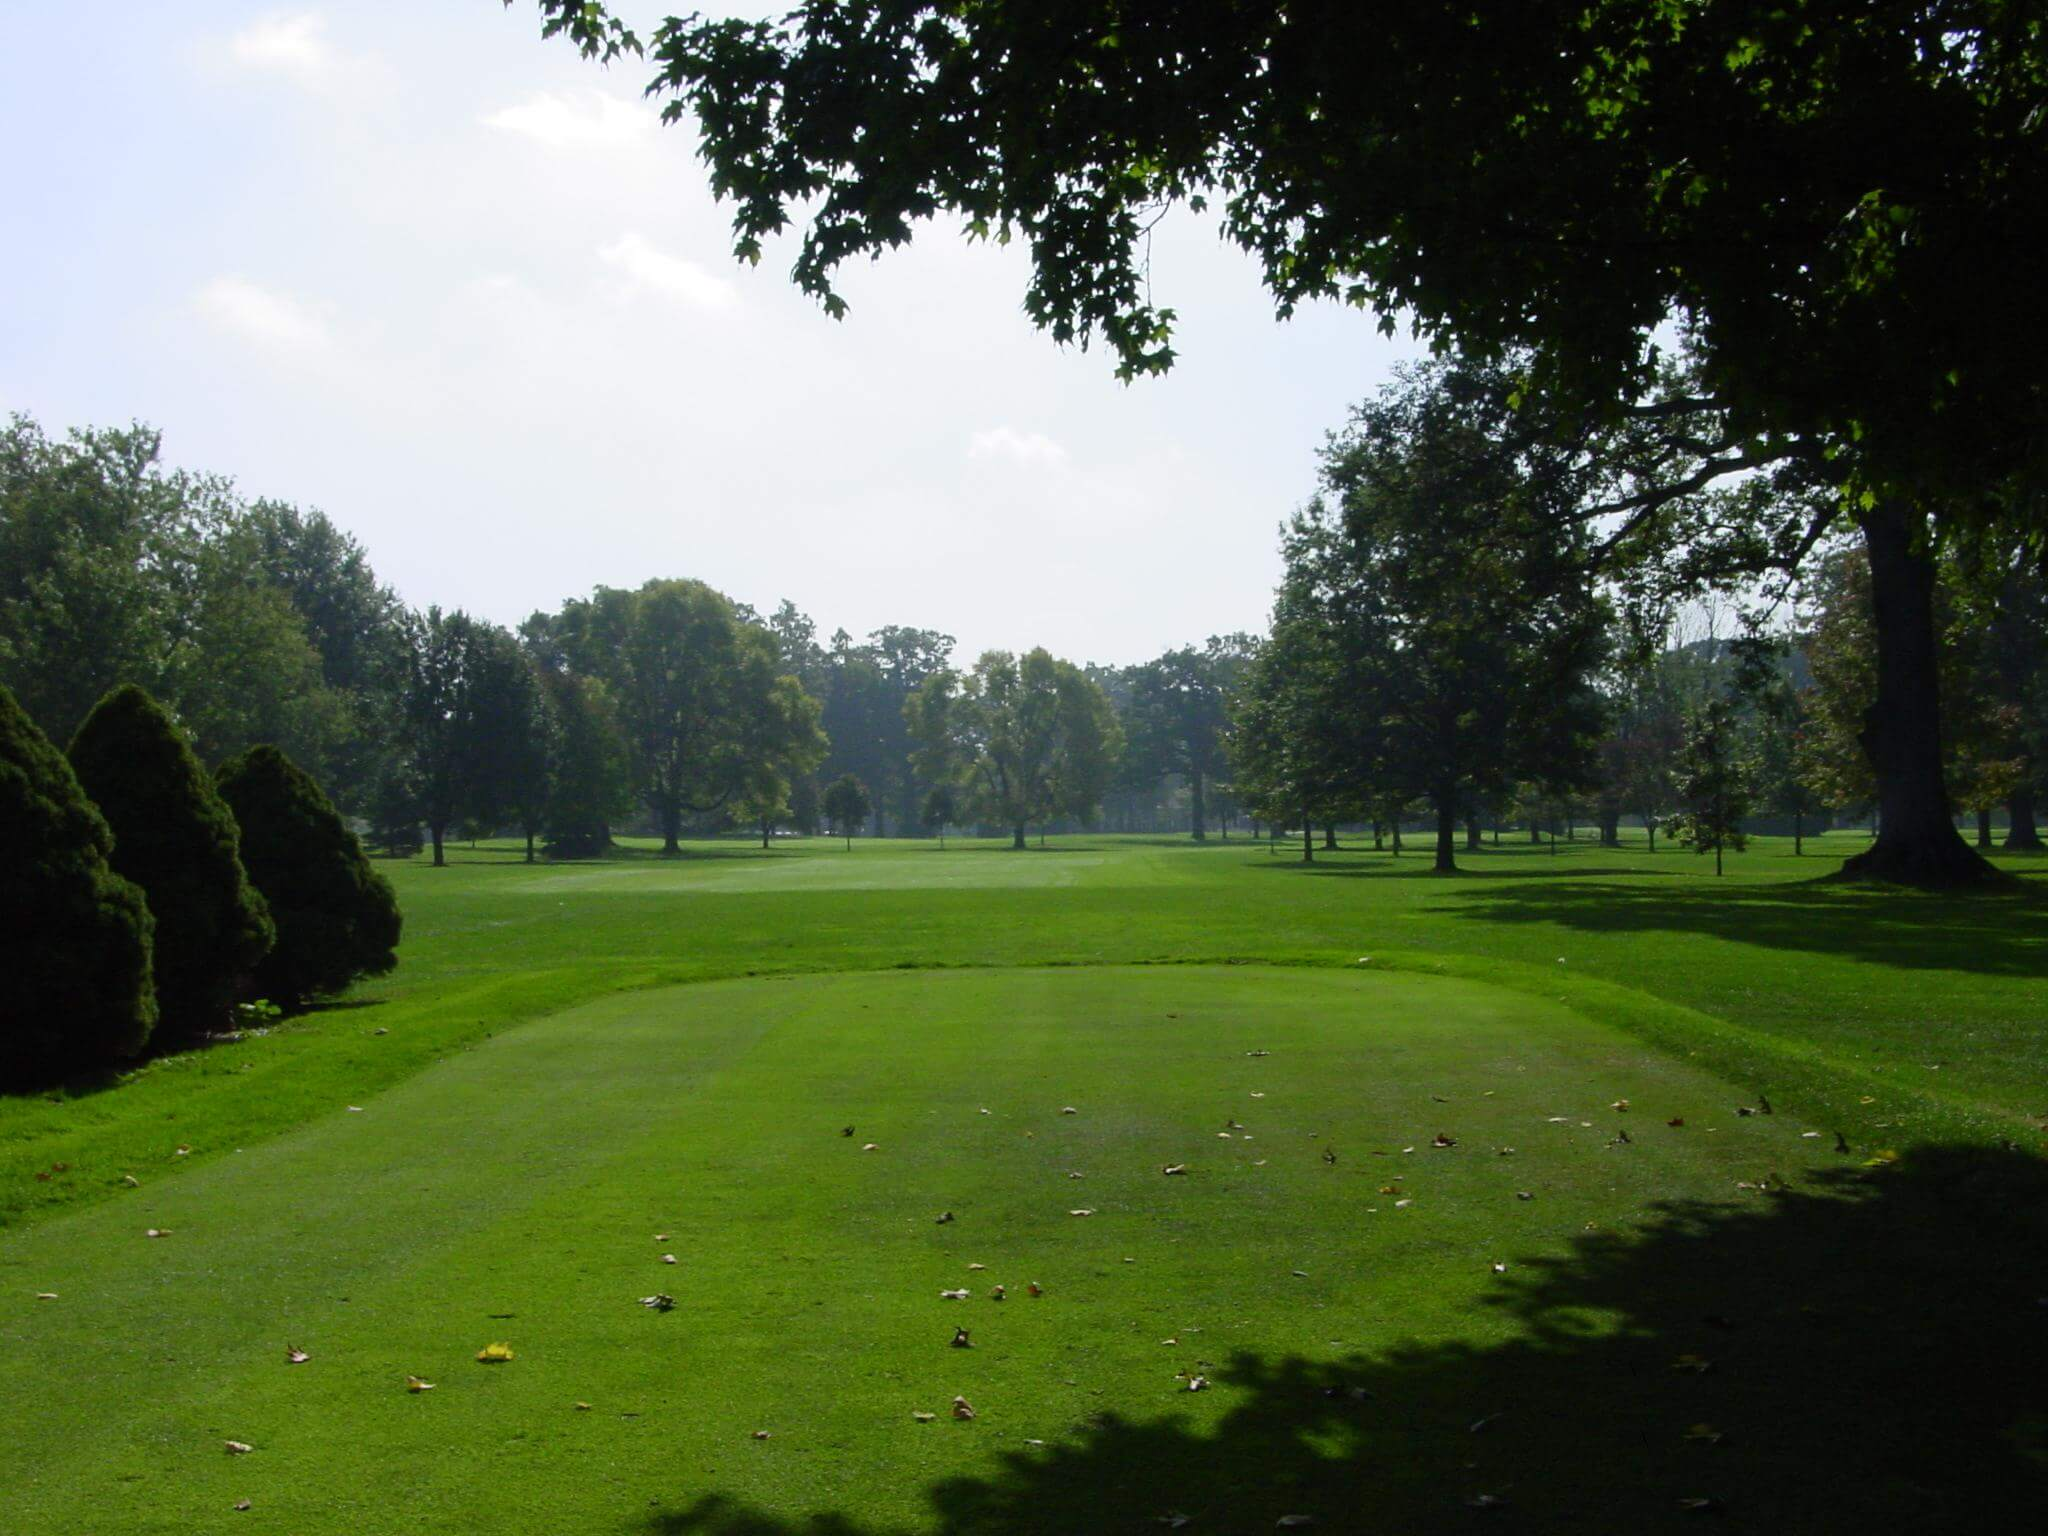 Hole 13 on the golf course